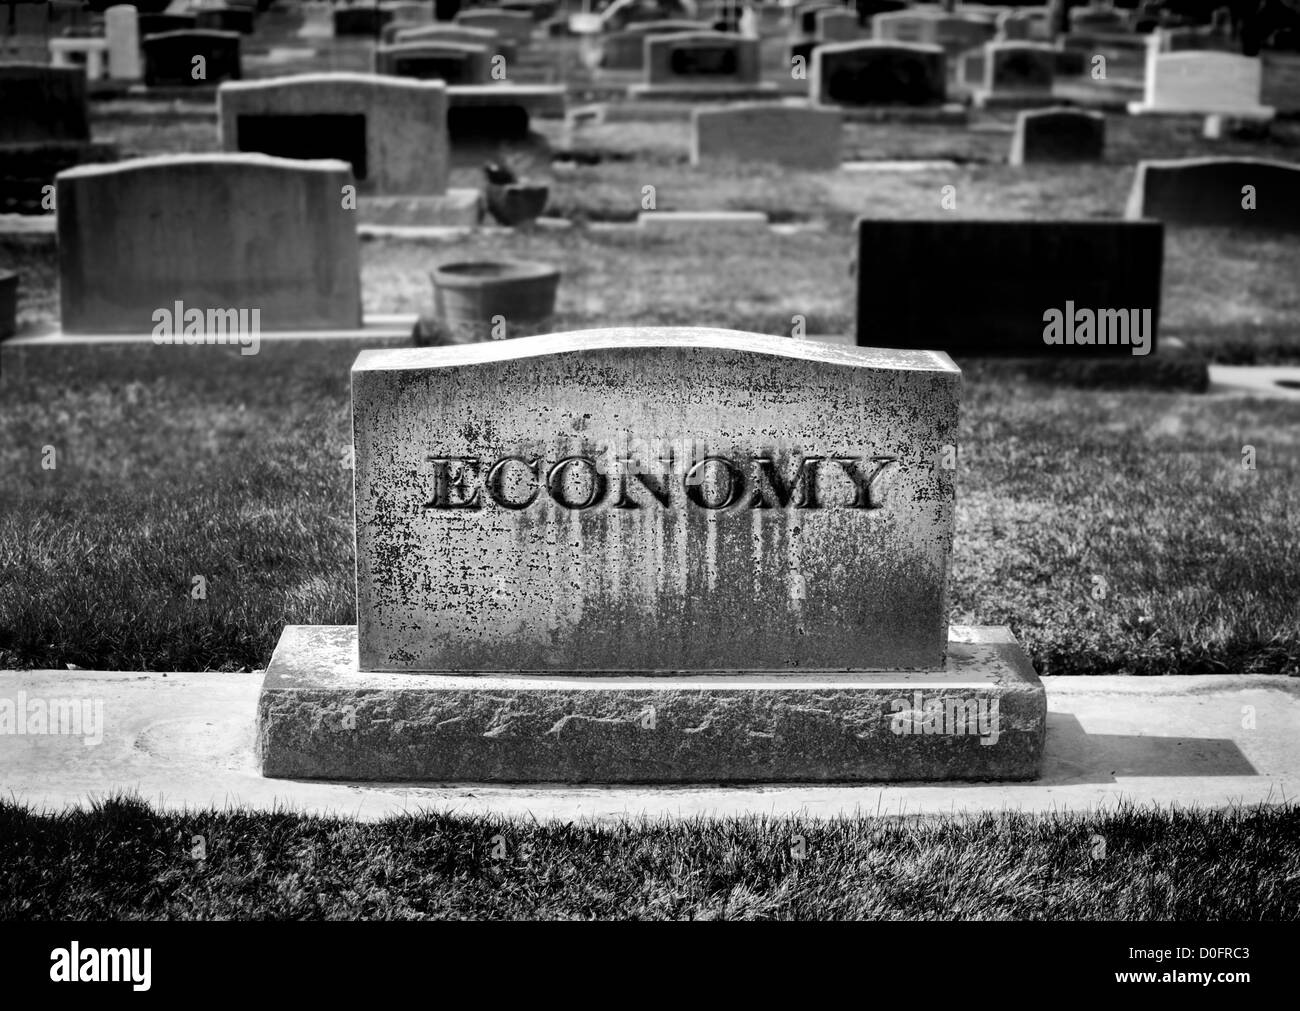 Graveyard and headstone or grave stone with economy carved as the name - Stock Image